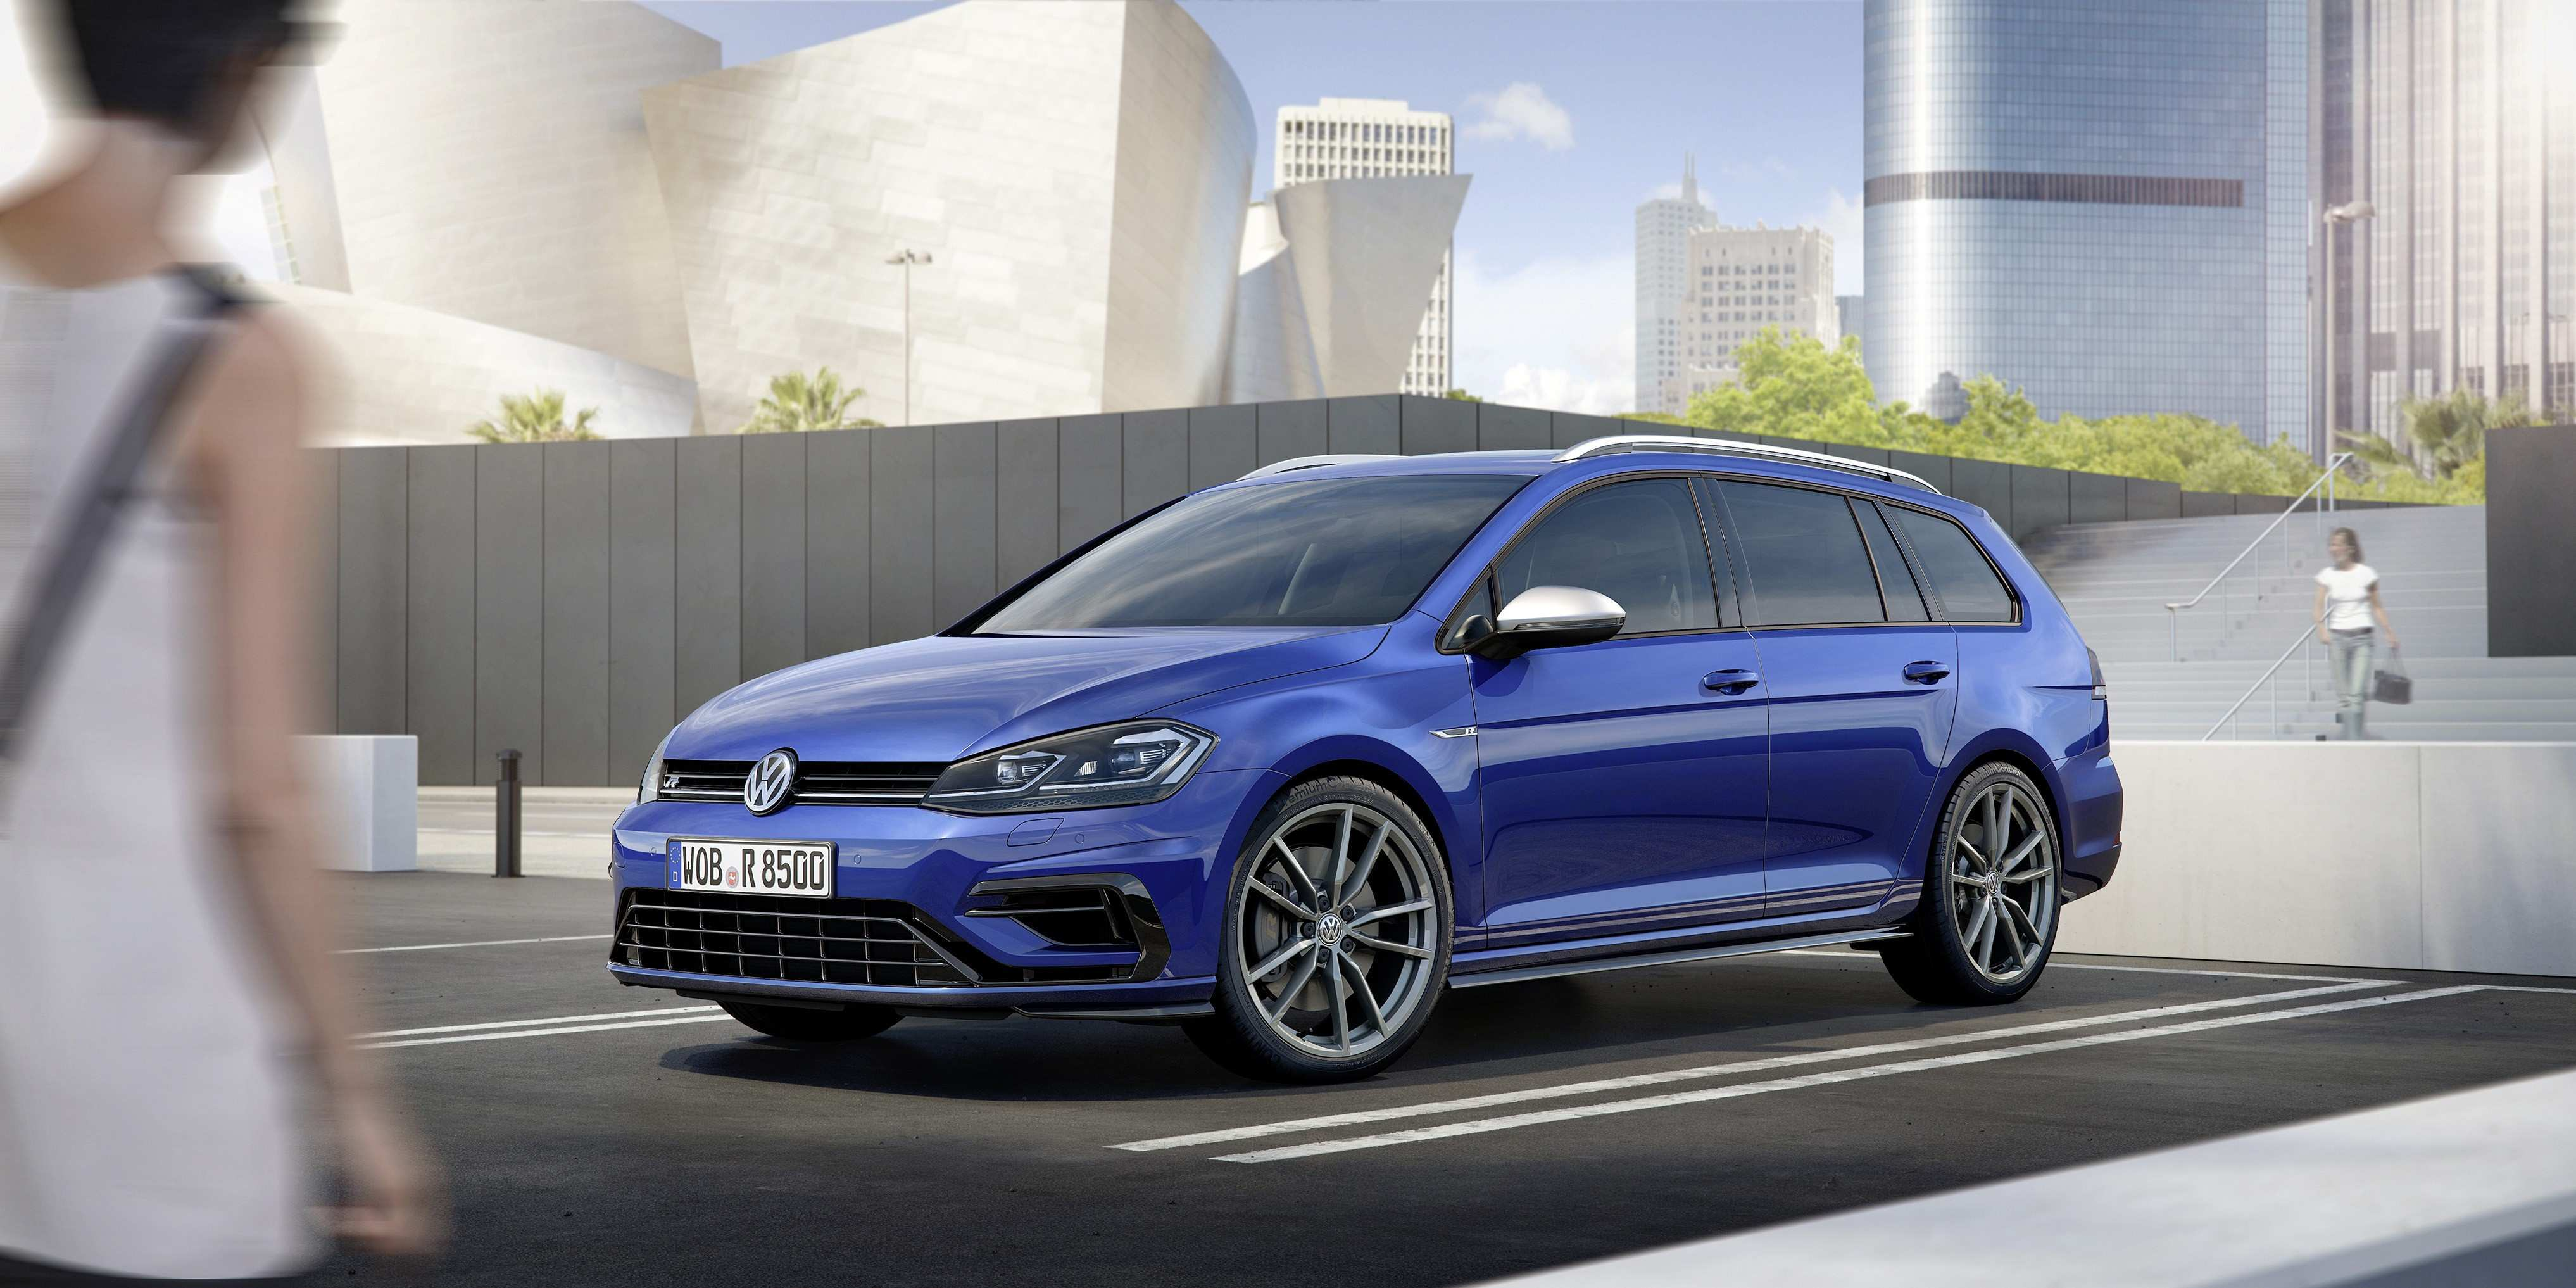 48 Gallery of 2019 Vw Golf Wagon Redesign and Concept with 2019 Vw Golf Wagon